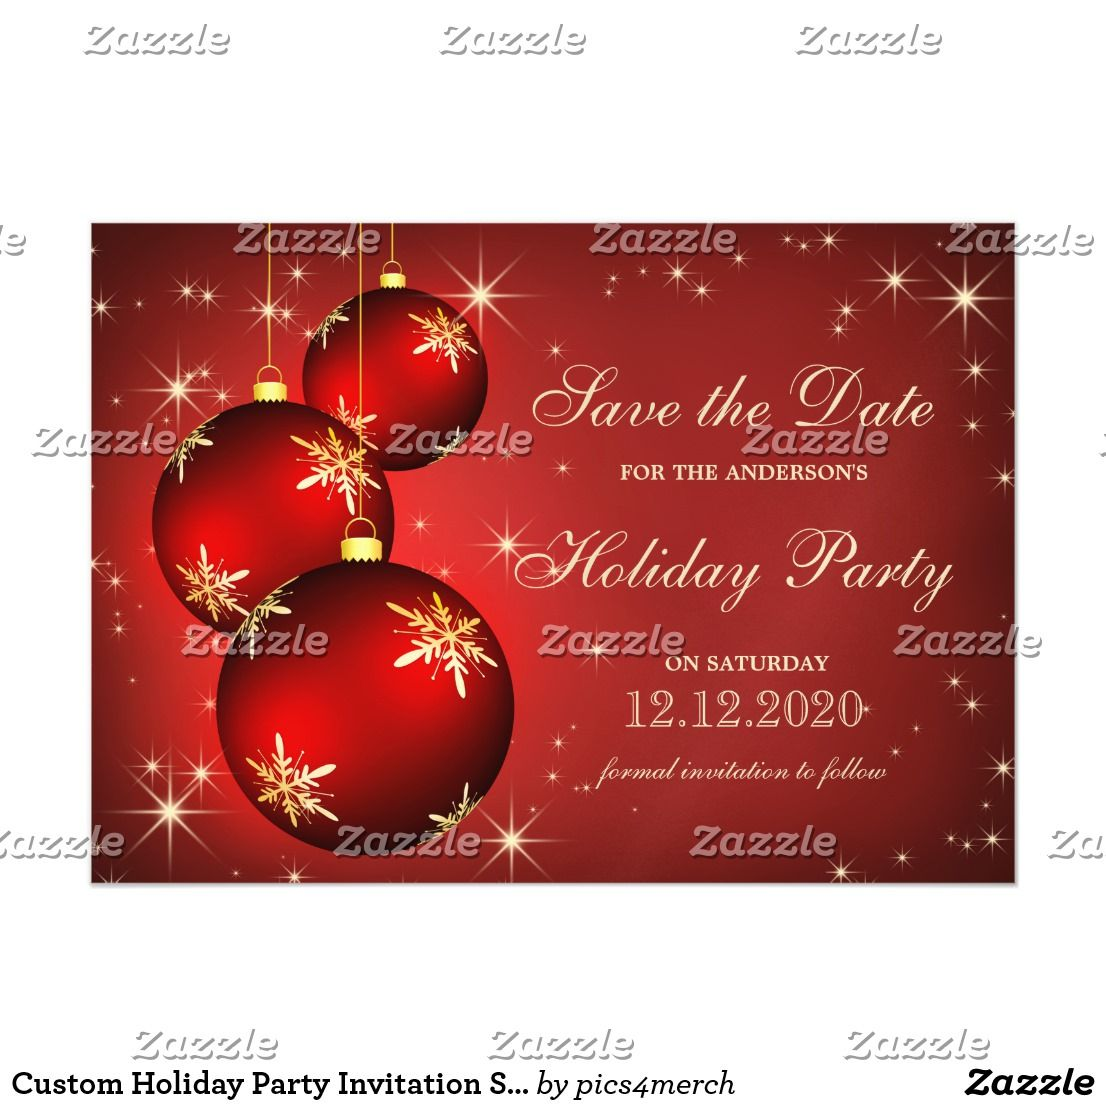 Custom Holiday Party Invitation Save The Date These custom Holiday ...